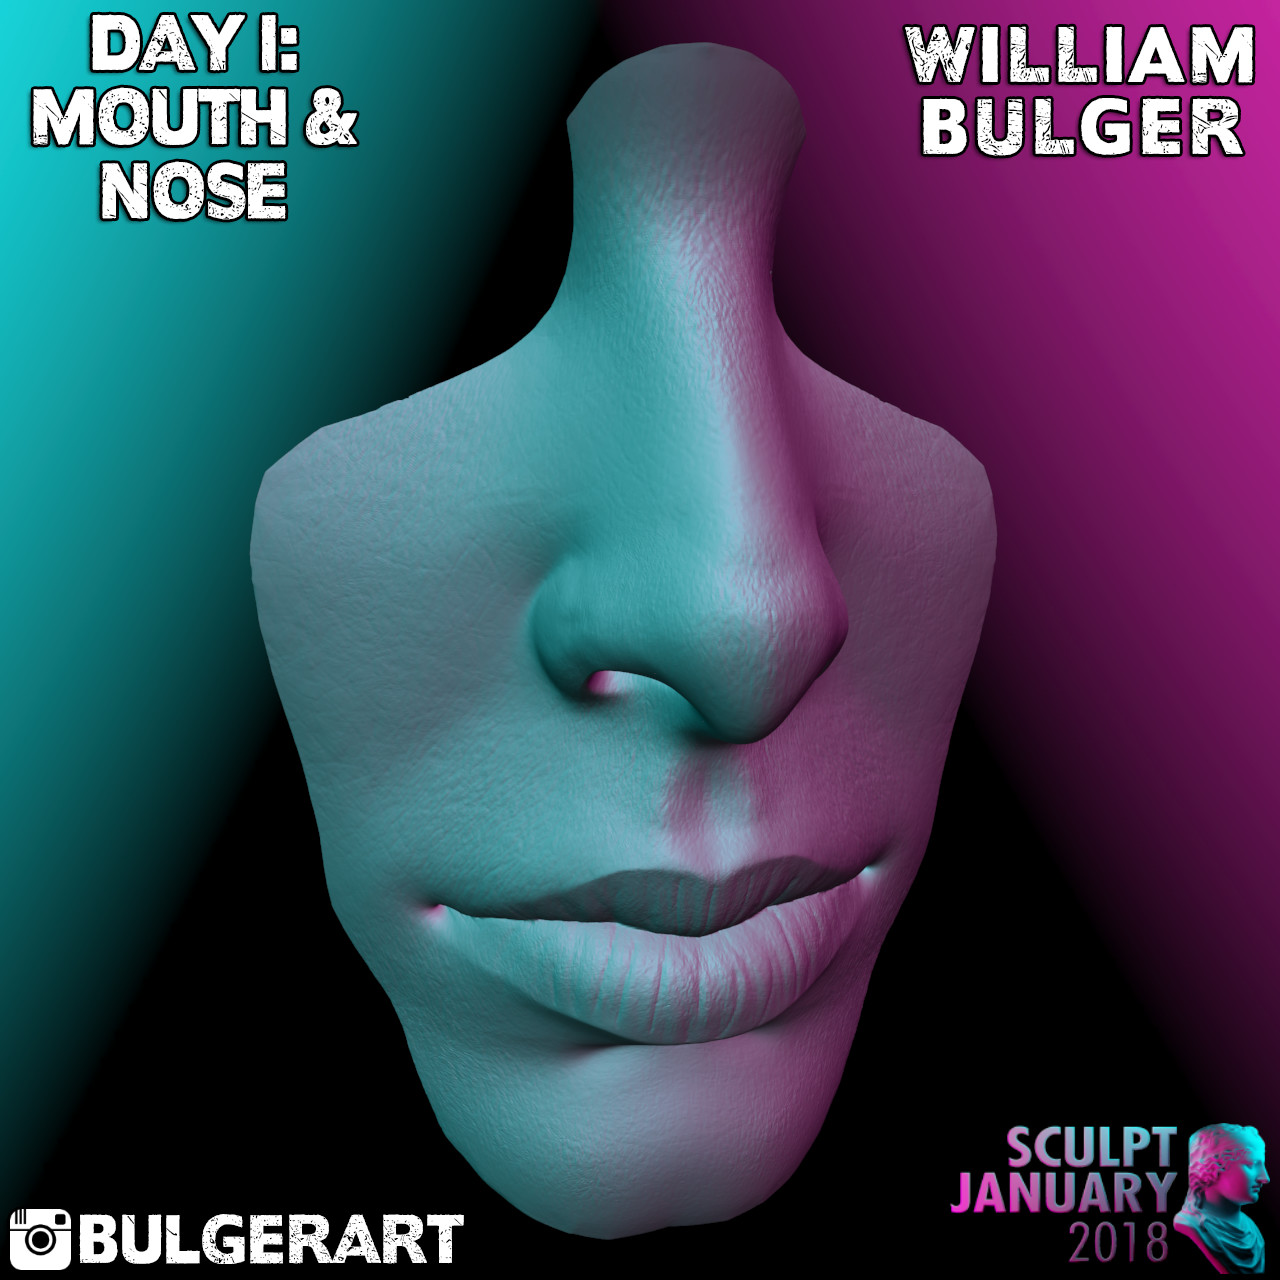 William bulger mouth and nose